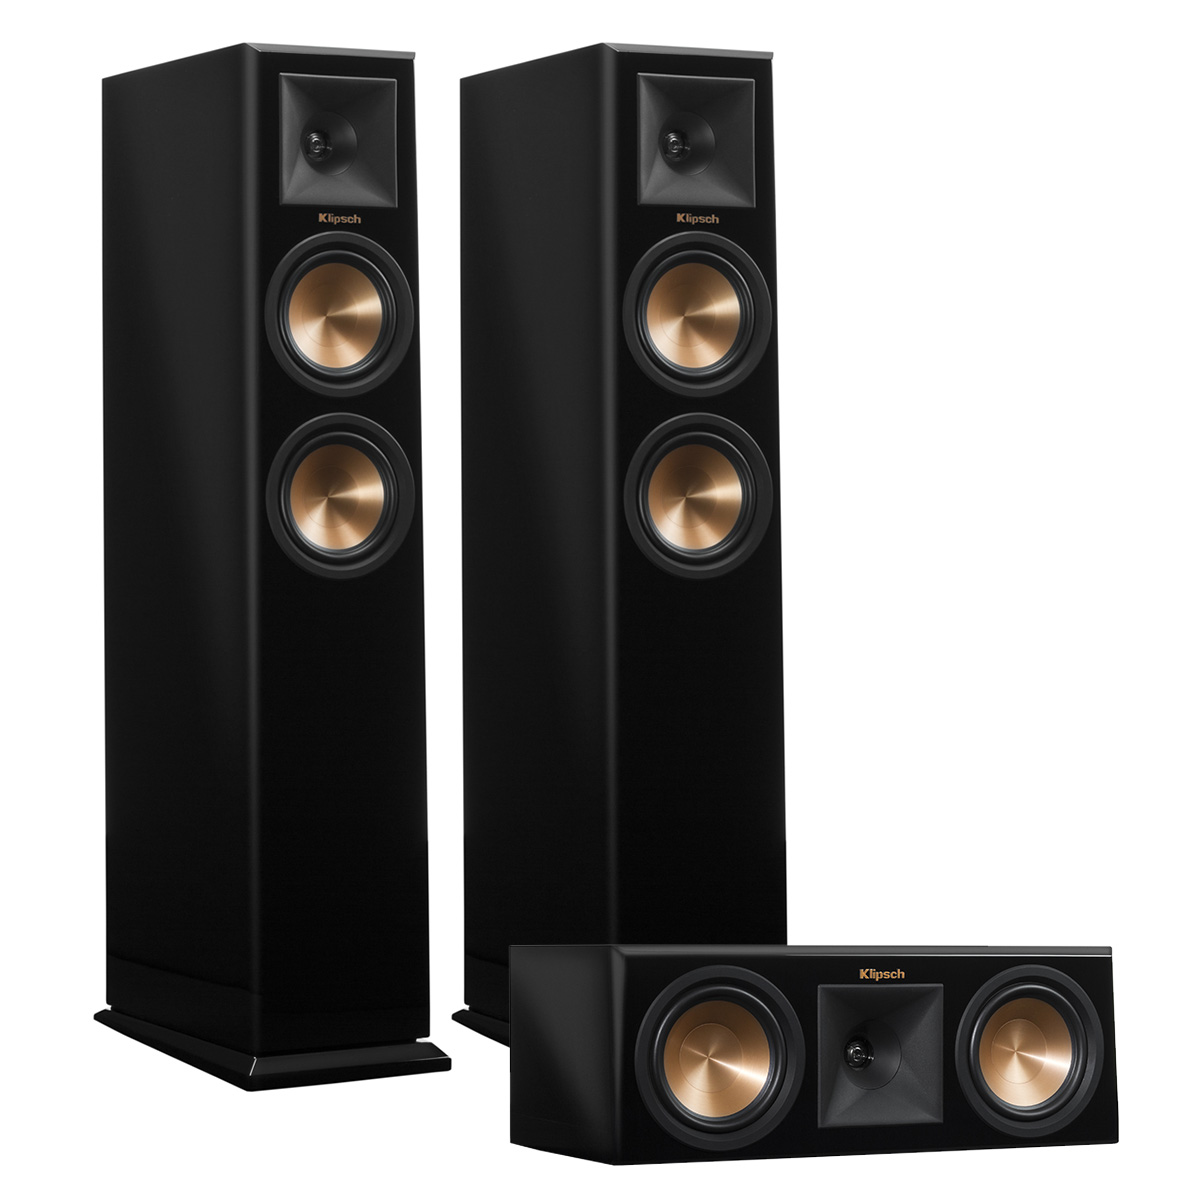 Klipsch RP-250F Reference Premiere Floorstanding Speaker Pair with RP-250C Center Channel Speaker (Piano Black) by Klipsch